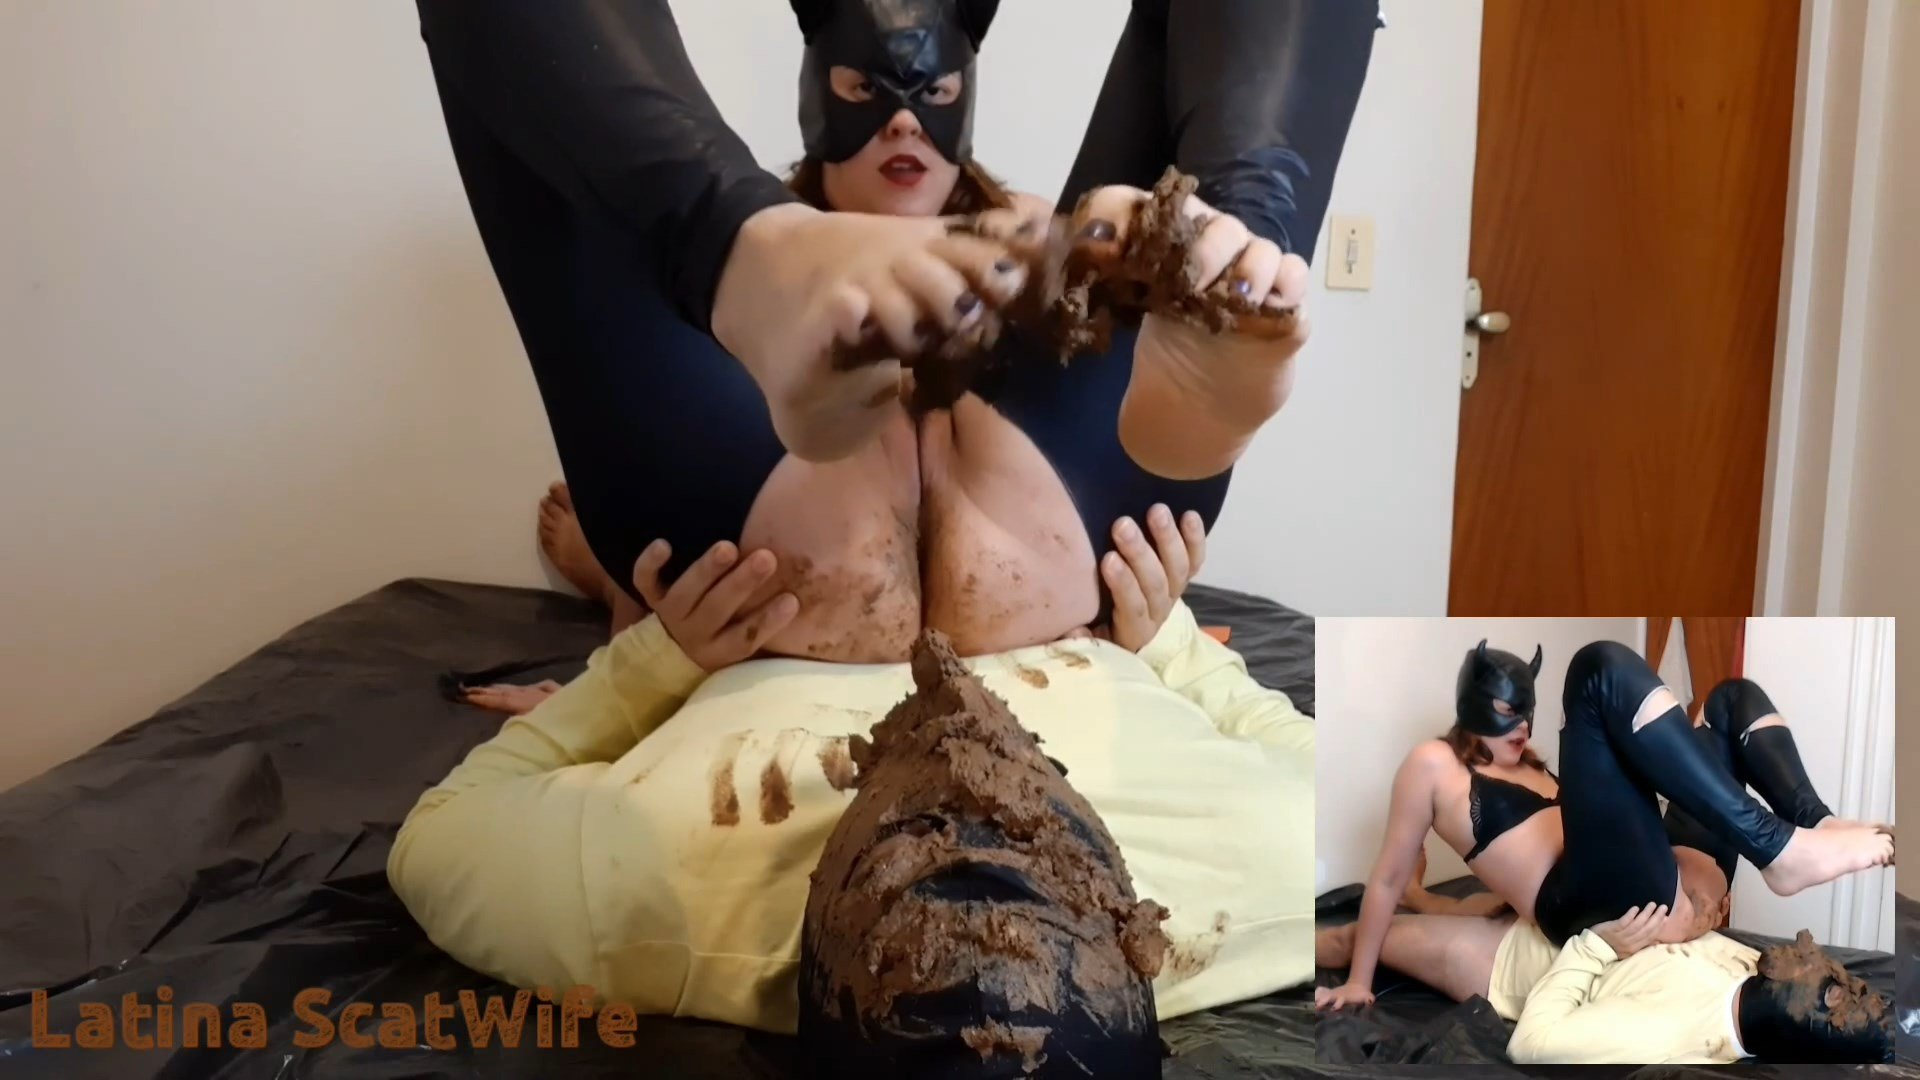 Giving it straight to the slave's mouth (2021) 33,99$ (Premium Request) by LatinaScatWife